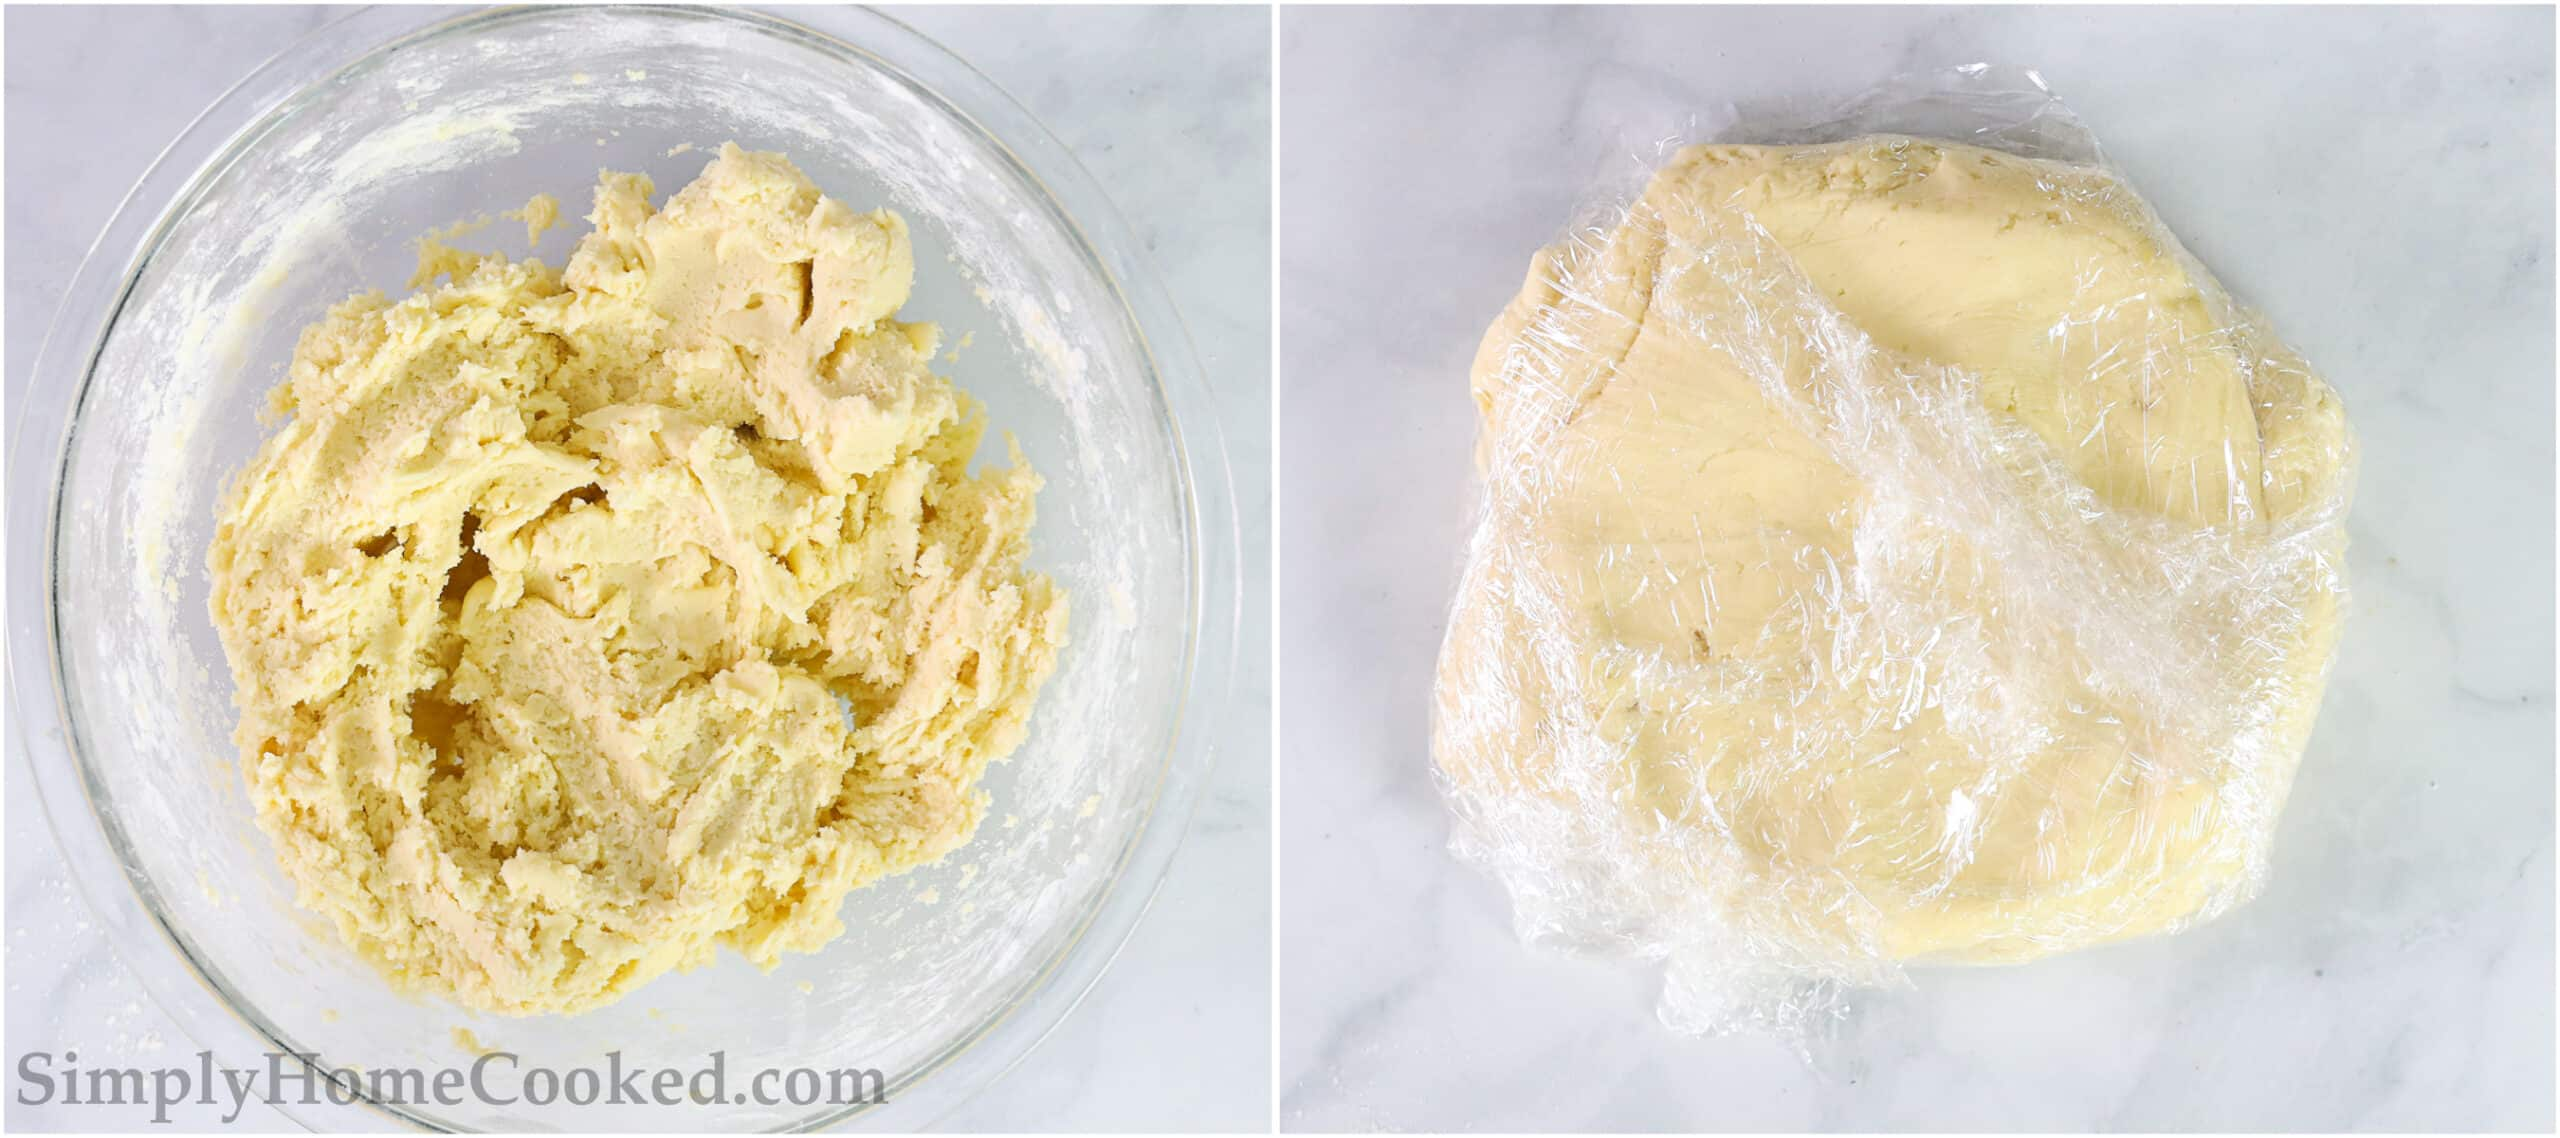 Steps to make Lofthouse Frosted Sugar Cookies, including wrapping the dough in plastic wrap and chilling in the fridge.